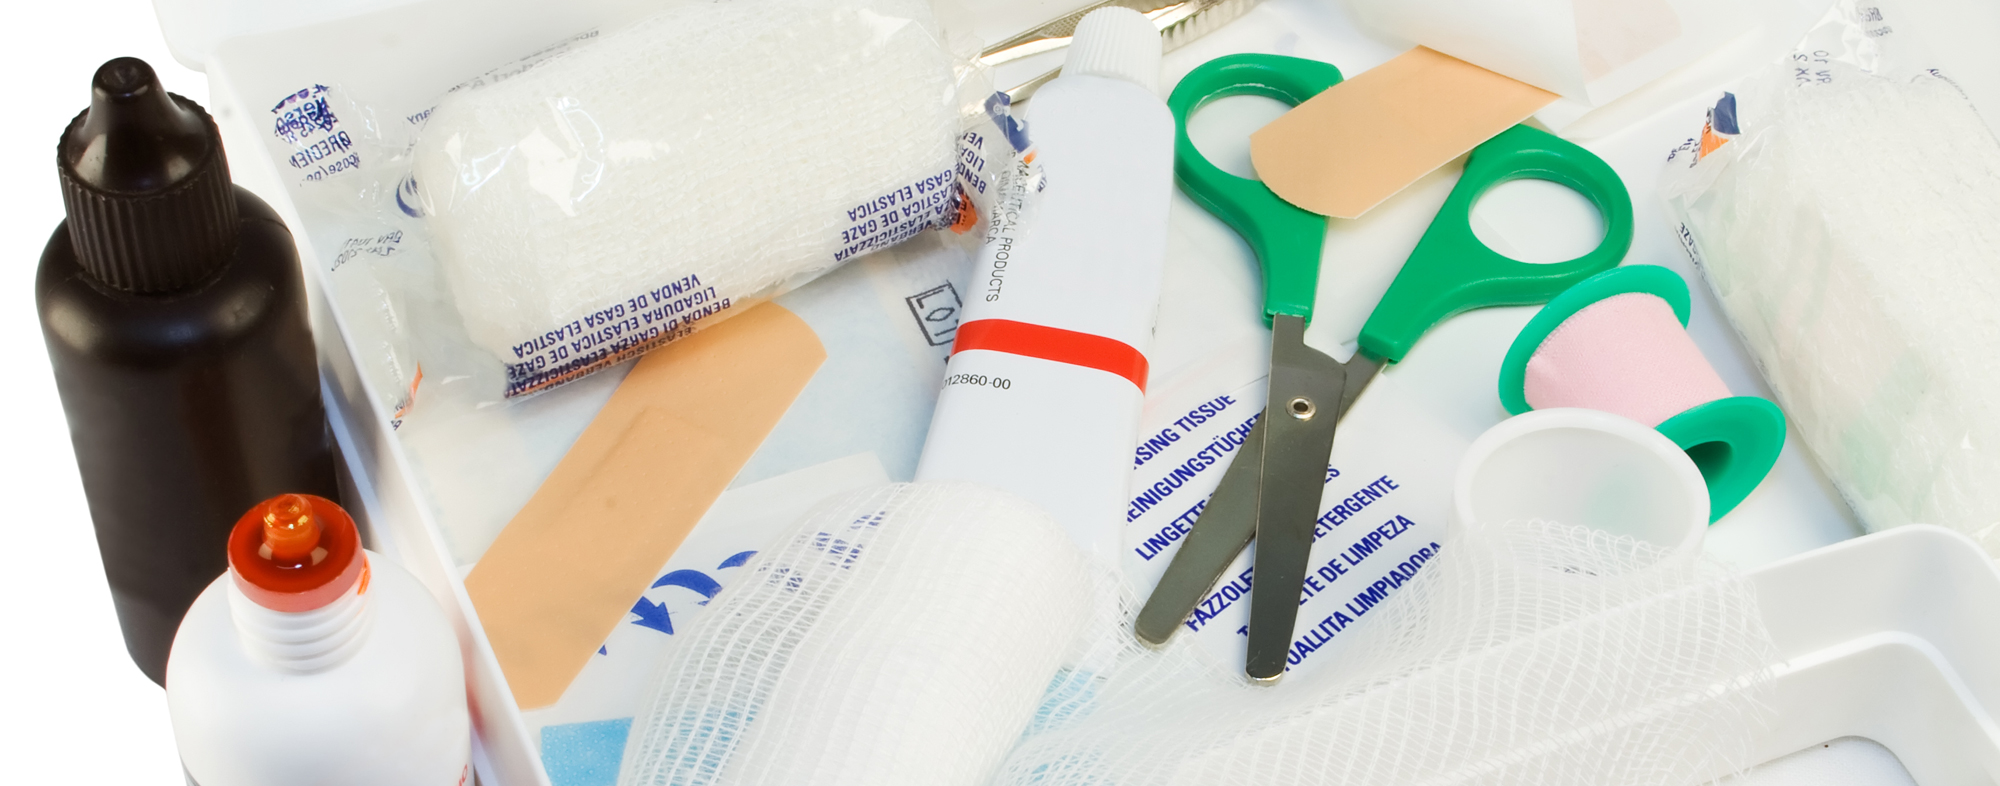 Medical supplies you need during a pet emergency, at the vet's office